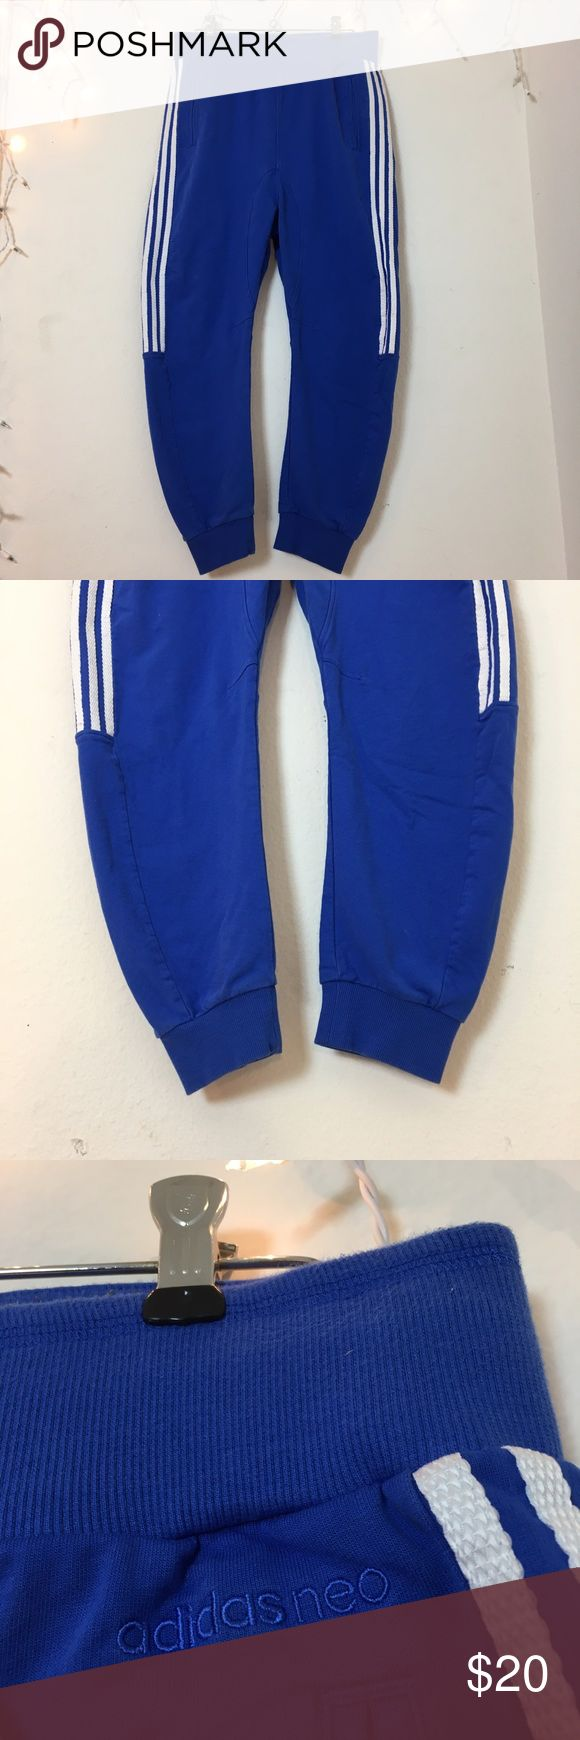 Adidas Neo Blue White Joggers Bright blue adidas Joggers with white stripes down the sides and tapered ankles. Super comfortable and in perfect (NEW) condition. Bought at Adidas warehouse in LA as a sample item (these are one of a kind). Adidas Pants Track Pants & Joggers